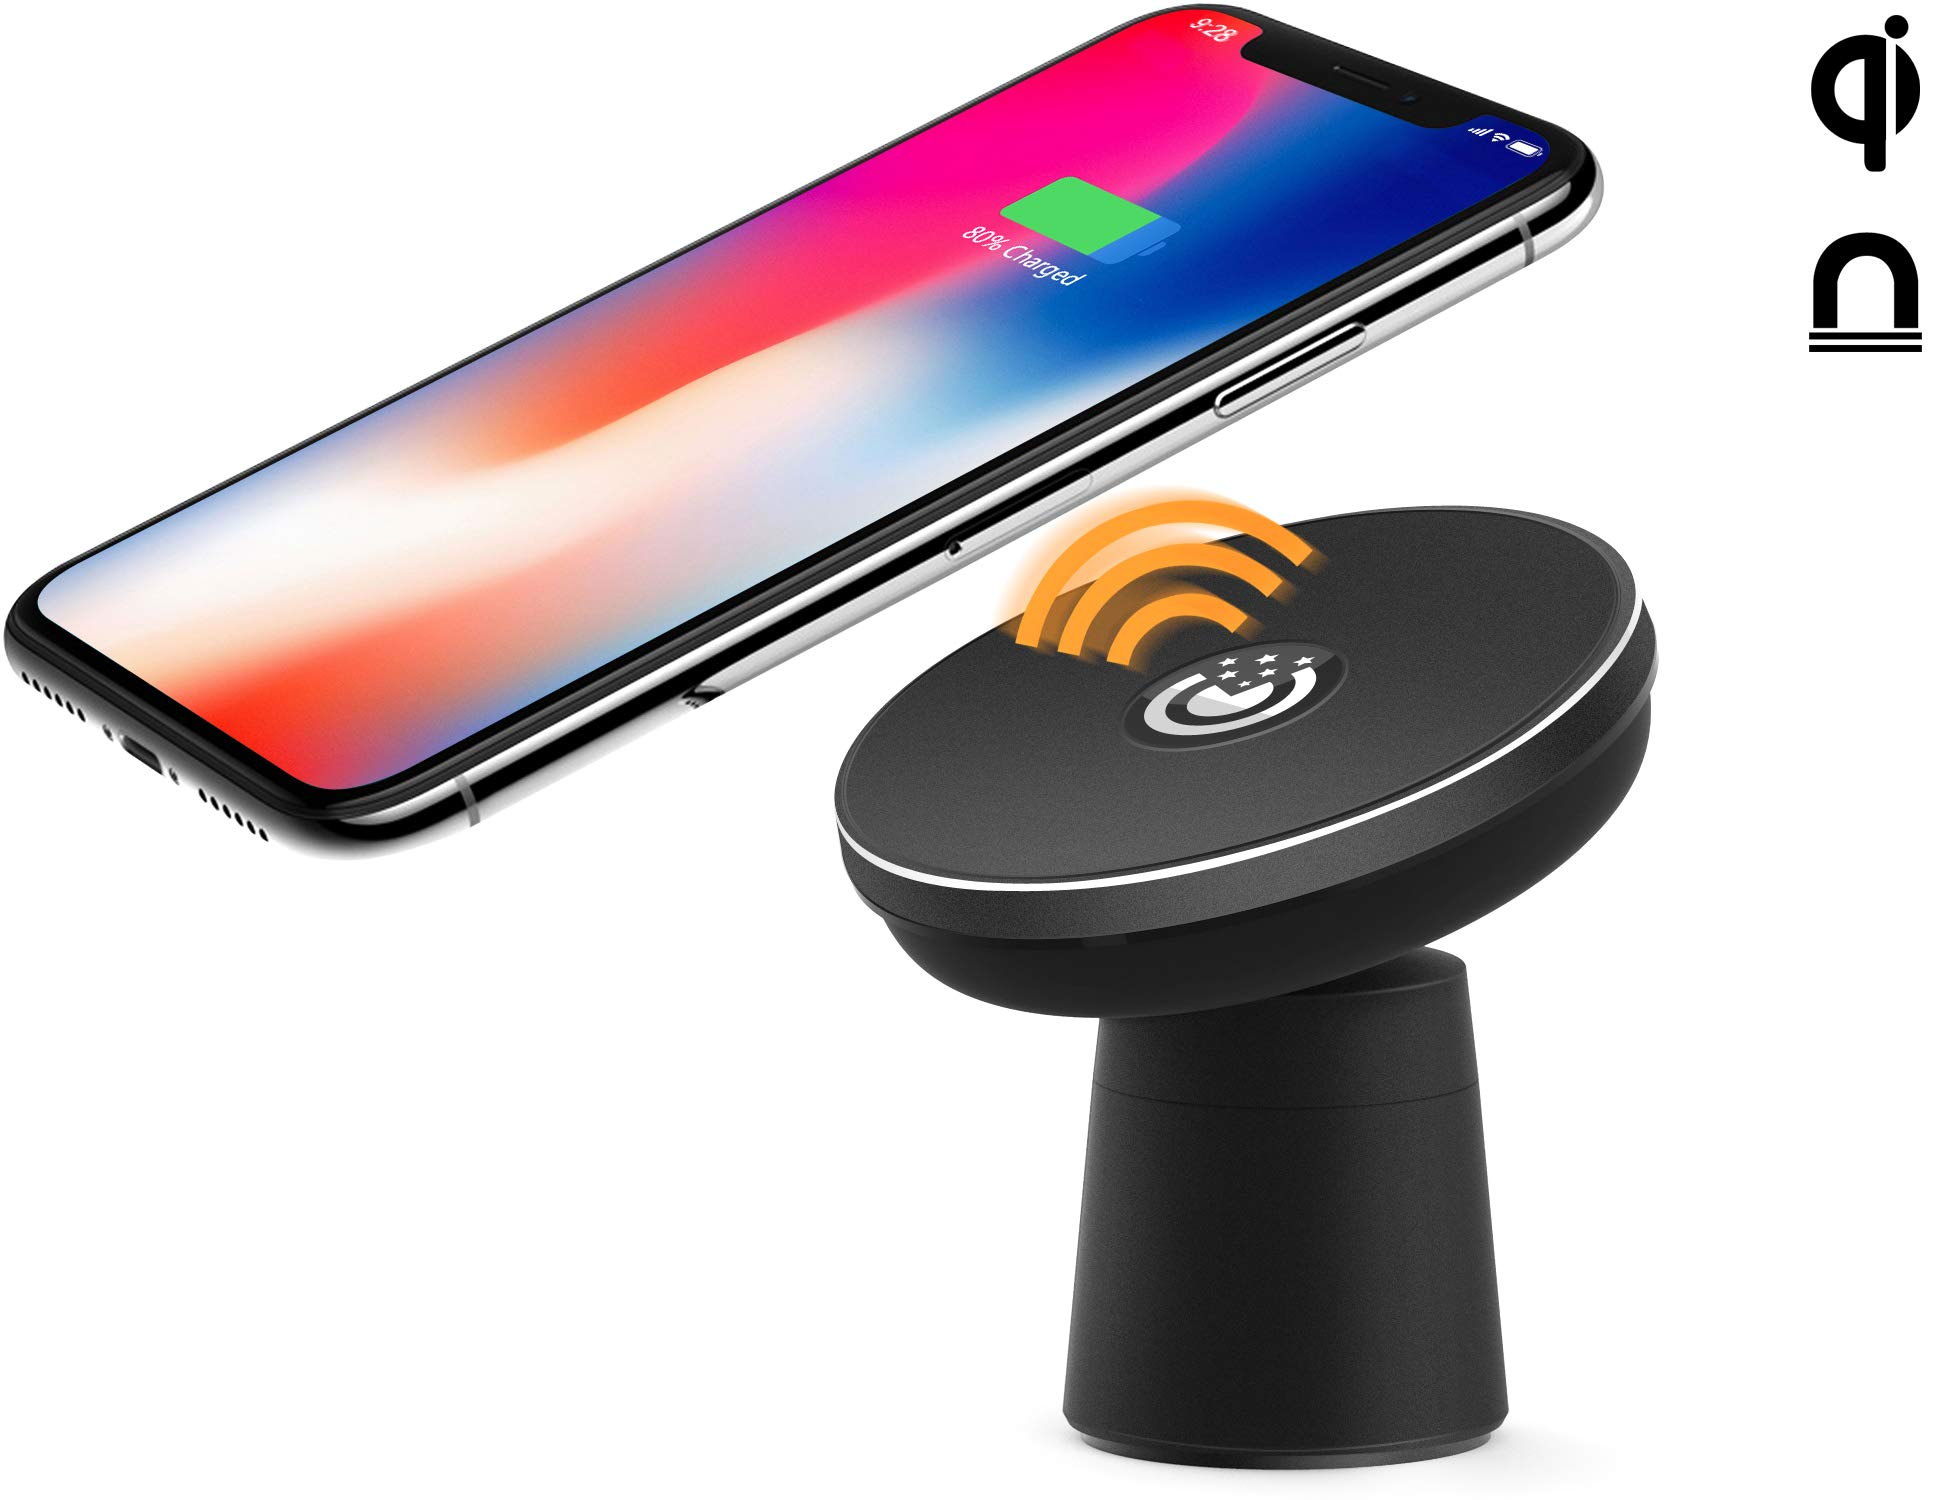 Magnetic Wireless Car Charger,Wireless Charging Samsung S8 S8+ S8 Plus S7 S7 Edge S6 Edge Plus Note 5 Note 7 Note 8 All QI-Enabled Devices (Nano Fast Charger)